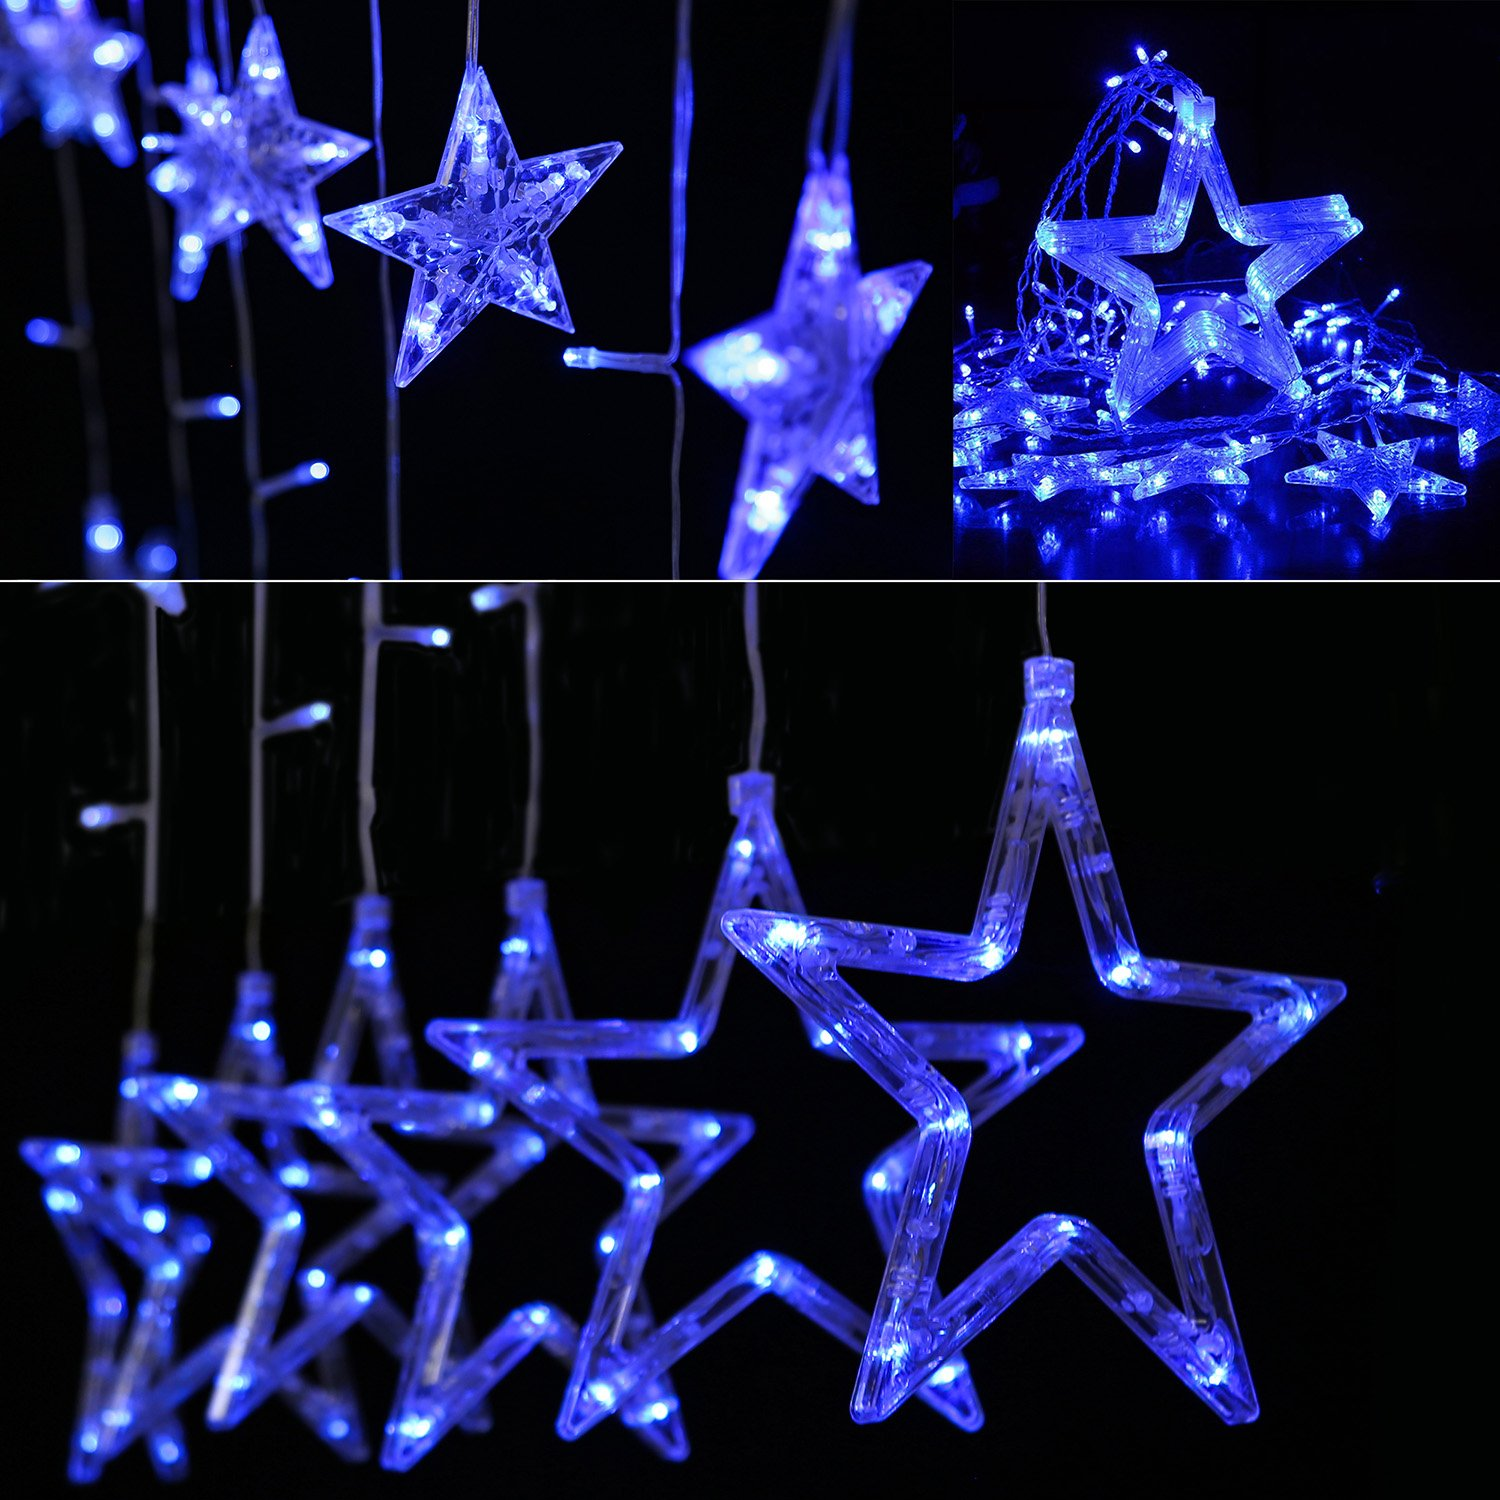 Curtain Lights Stars,Bienna 6.6ft/2M 138 LED USB Powered Twinkle Fairy Waterproof String Lighting [8 Modes] with Remote & Timer for Christmas Window Weddings Bedroom Indoor Outdoor Home Party-Blue